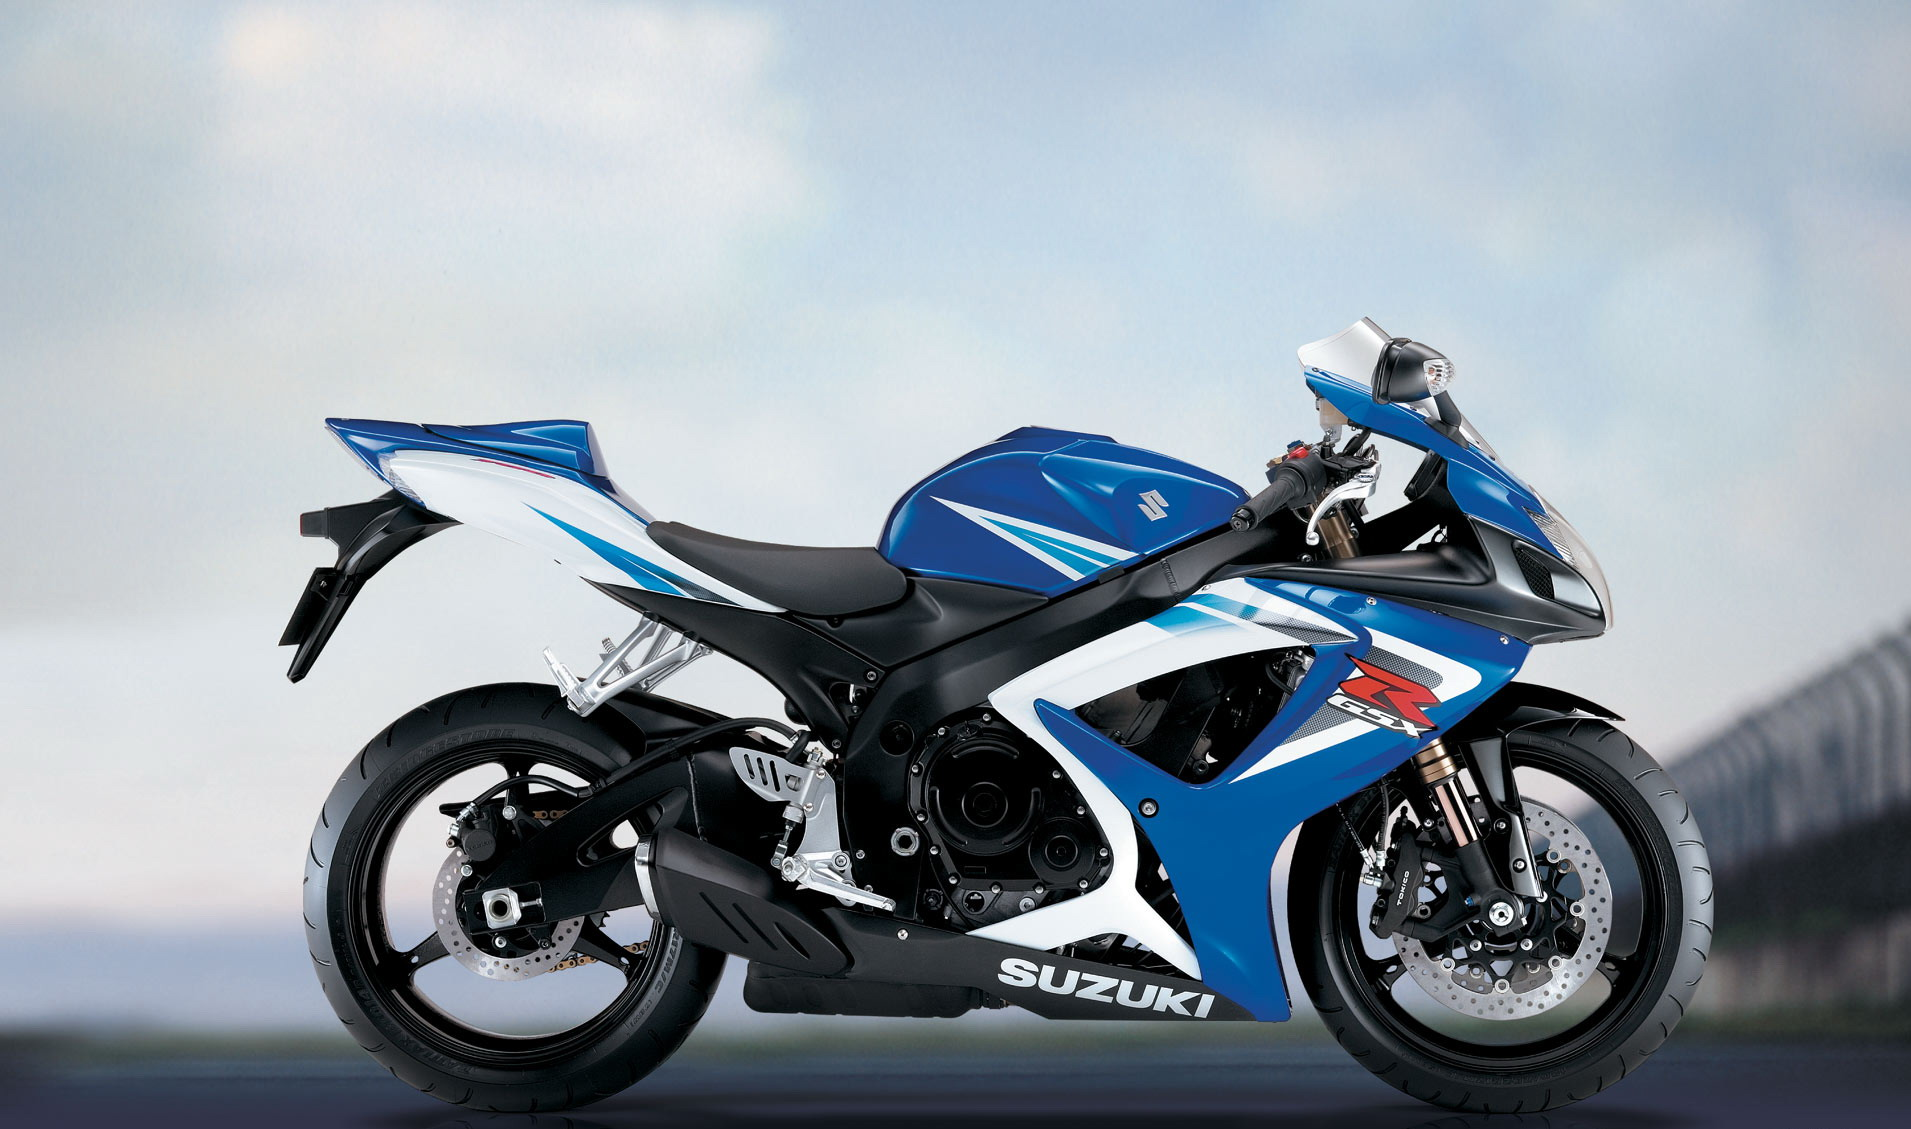 suzuki gsxr 750 pictures photos wallpapers top speed. Black Bedroom Furniture Sets. Home Design Ideas